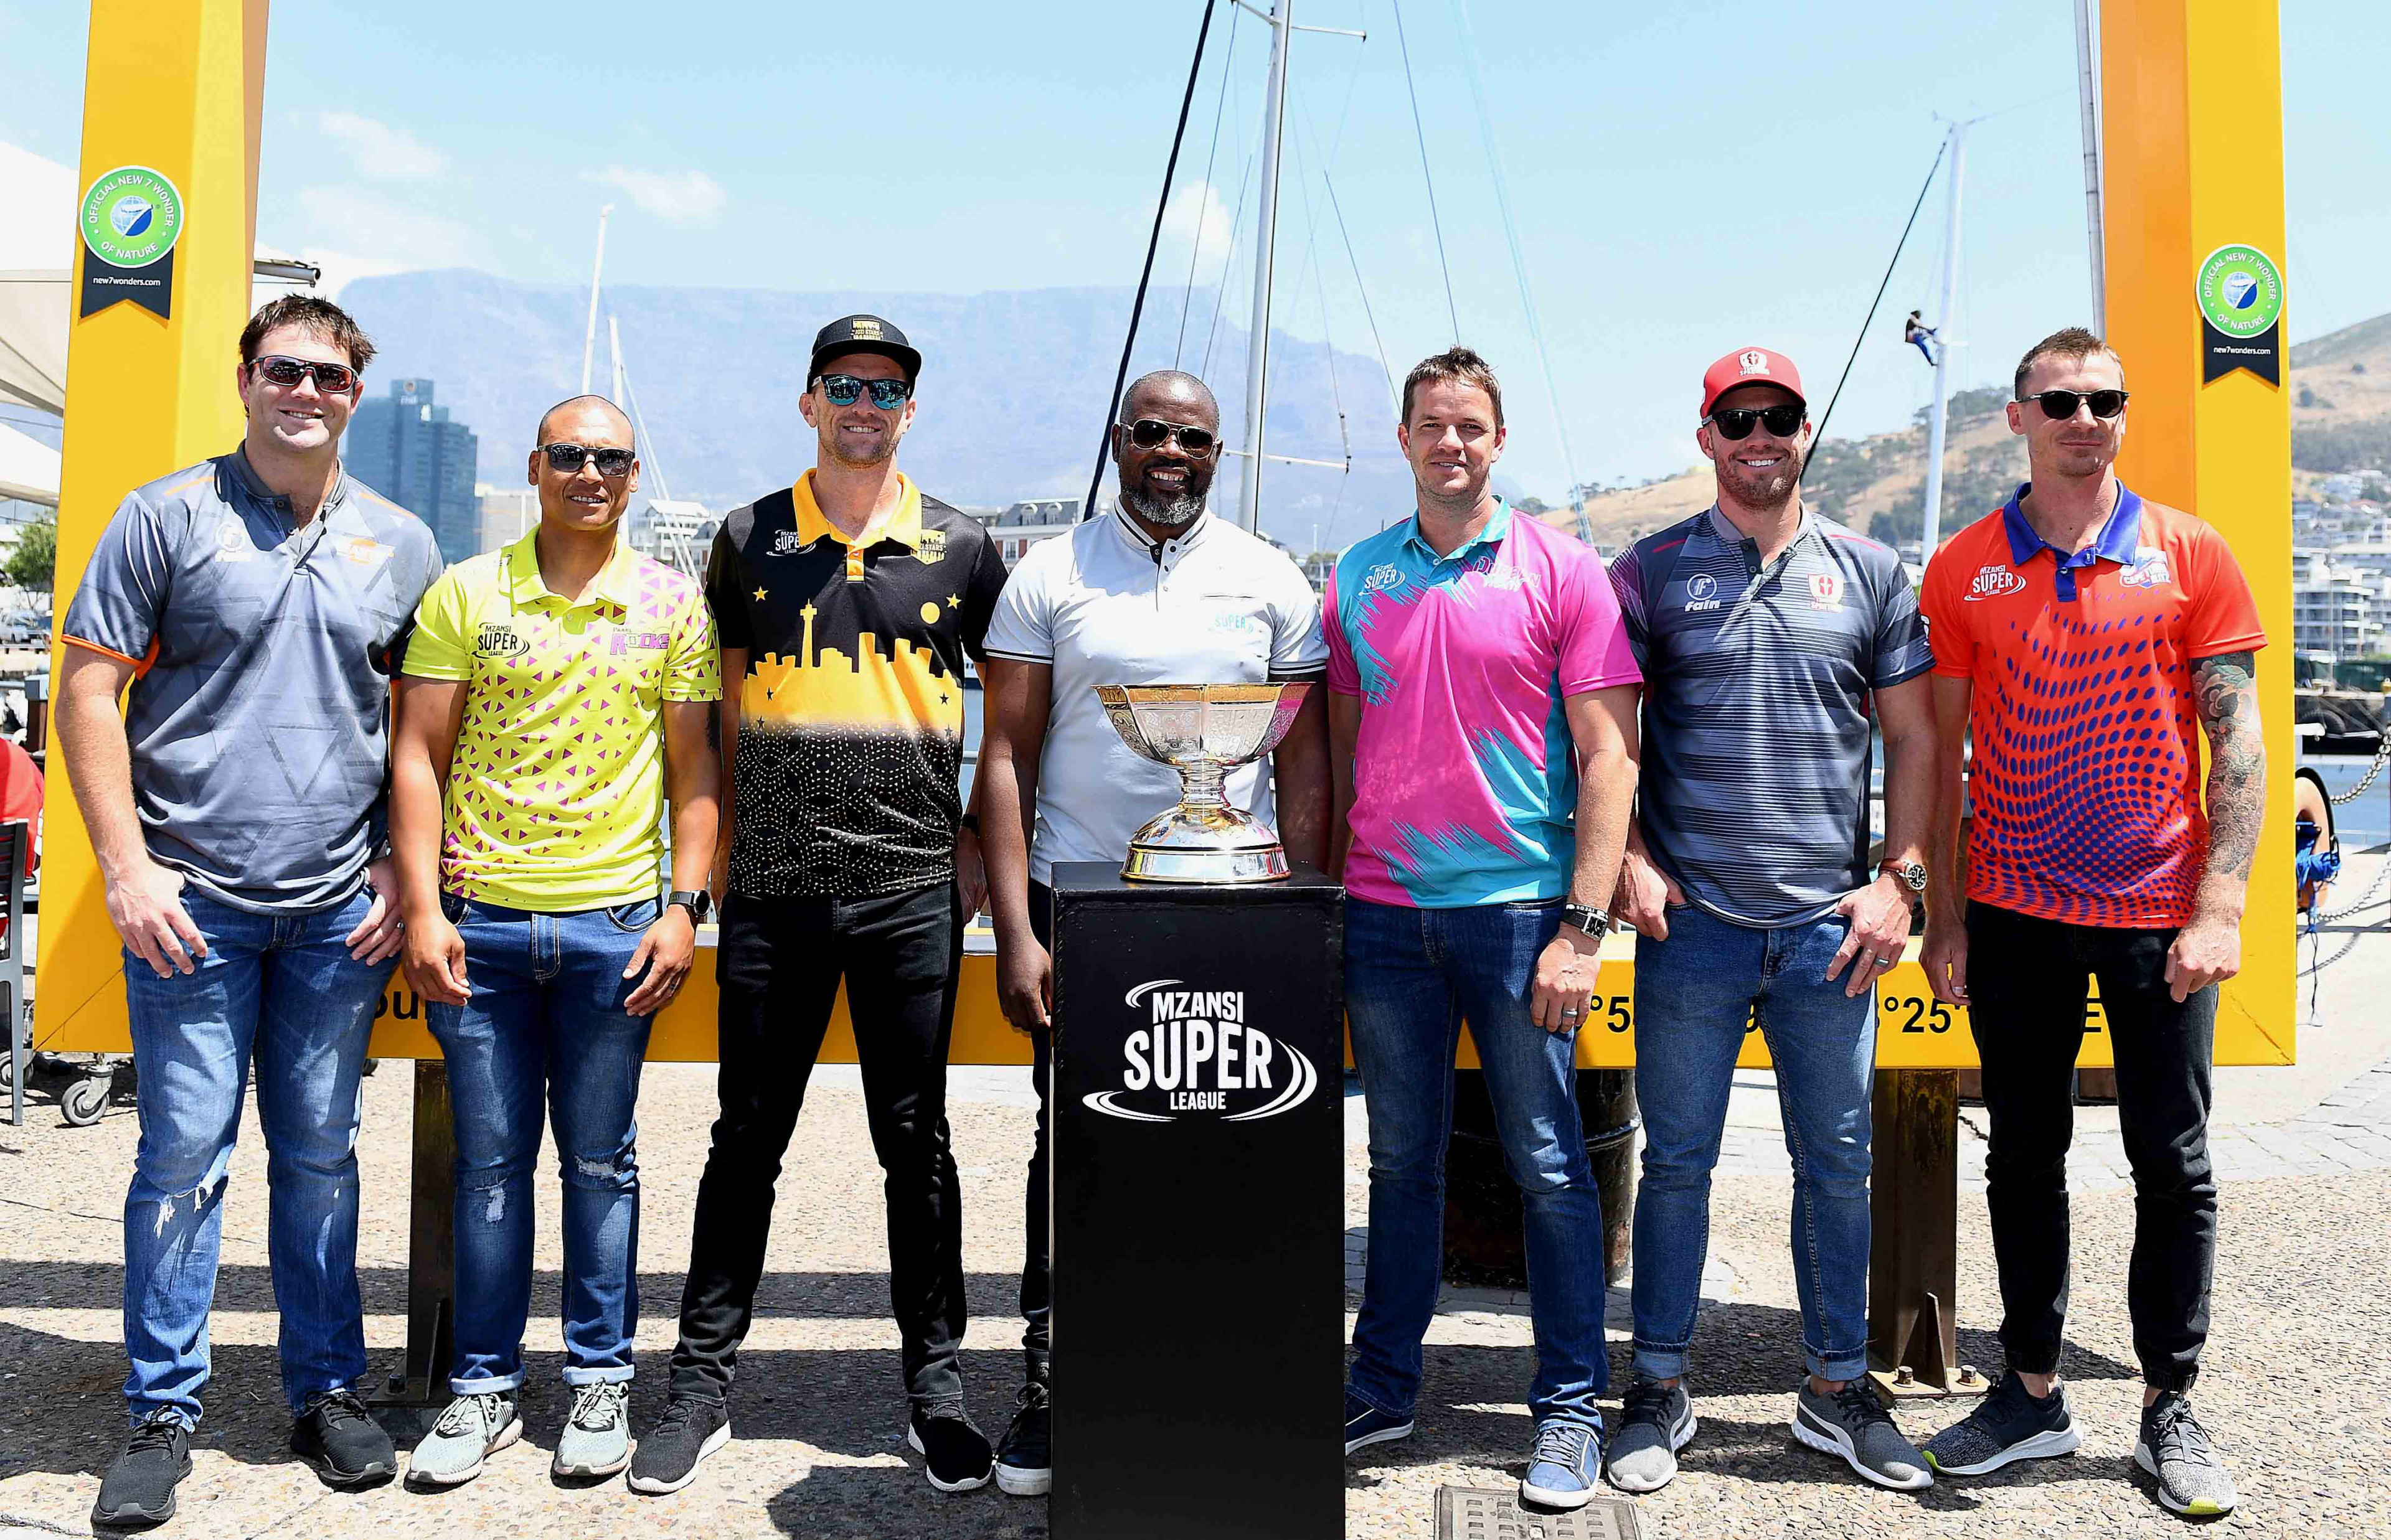 15 November 2018: Jon-Jon Smuts, Henry Davids, Dane Vilas, Thabang Moroe, Albie Morkel, AB de Villiers and Dale Steyn at the 2018 Mzansi Super League Launch at the V&A Waterfront, Cape Town. (Photograph by Ashley Vlotman/Gallo Images)